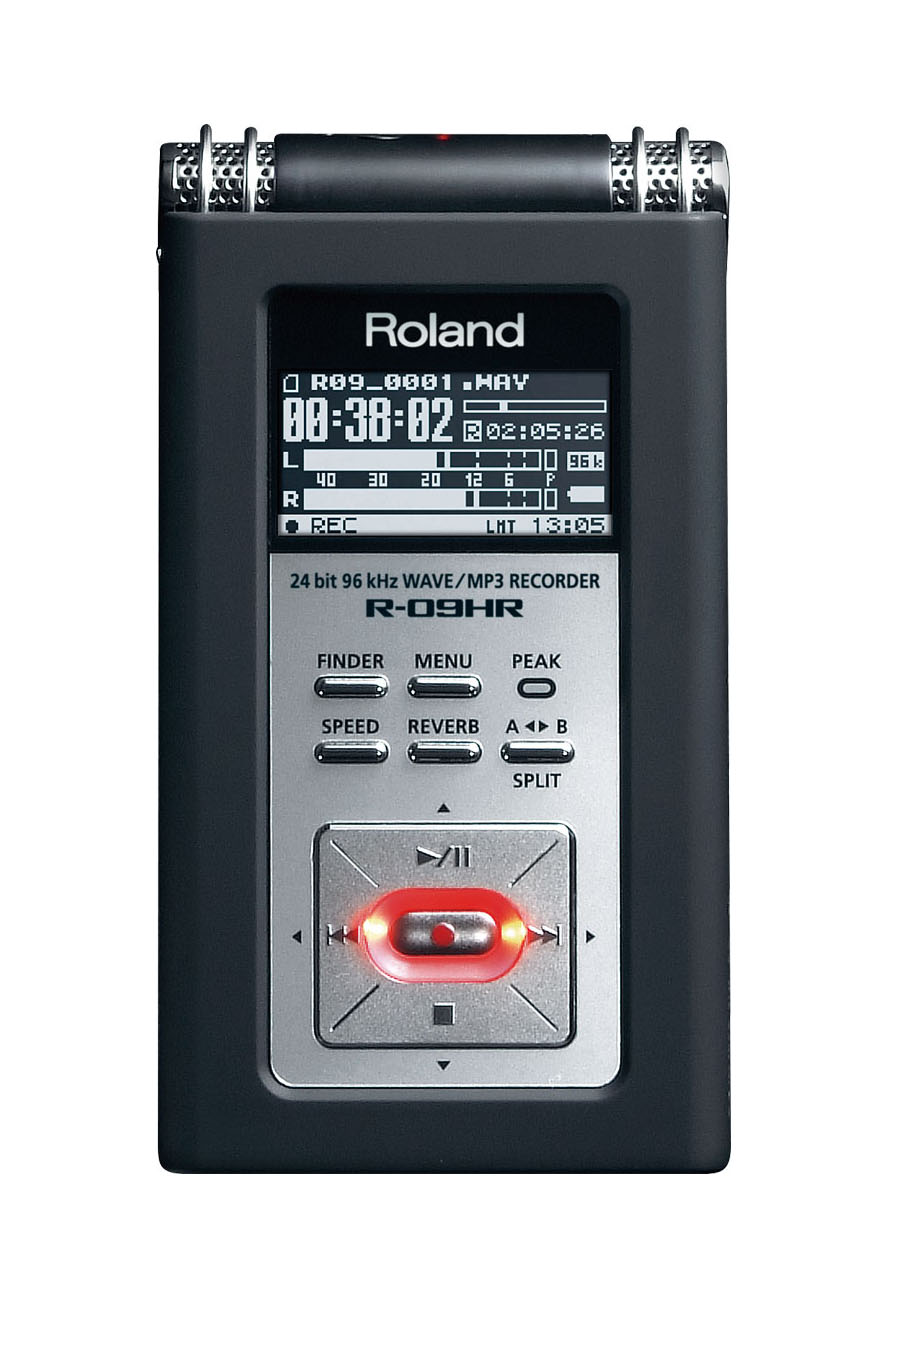 Edirol brand digital recorder